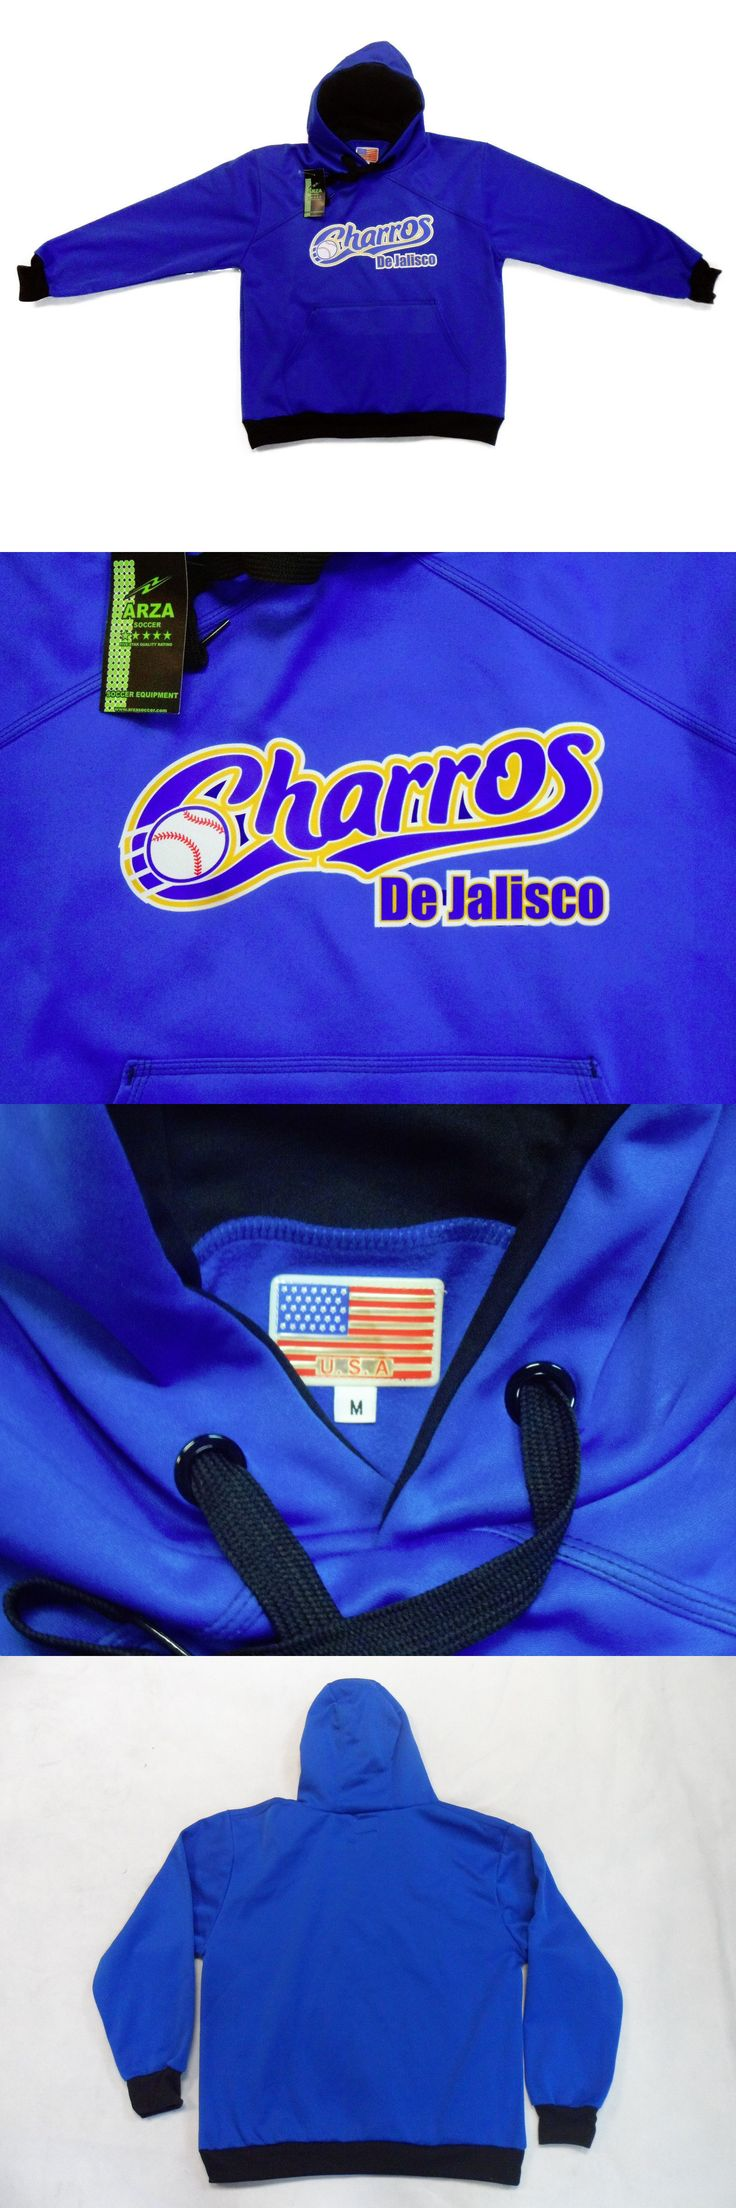 Baseball-Other 204: Charros De Jalisco Sweater With Hoodie -> BUY IT NOW ONLY: $37.99 on eBay!